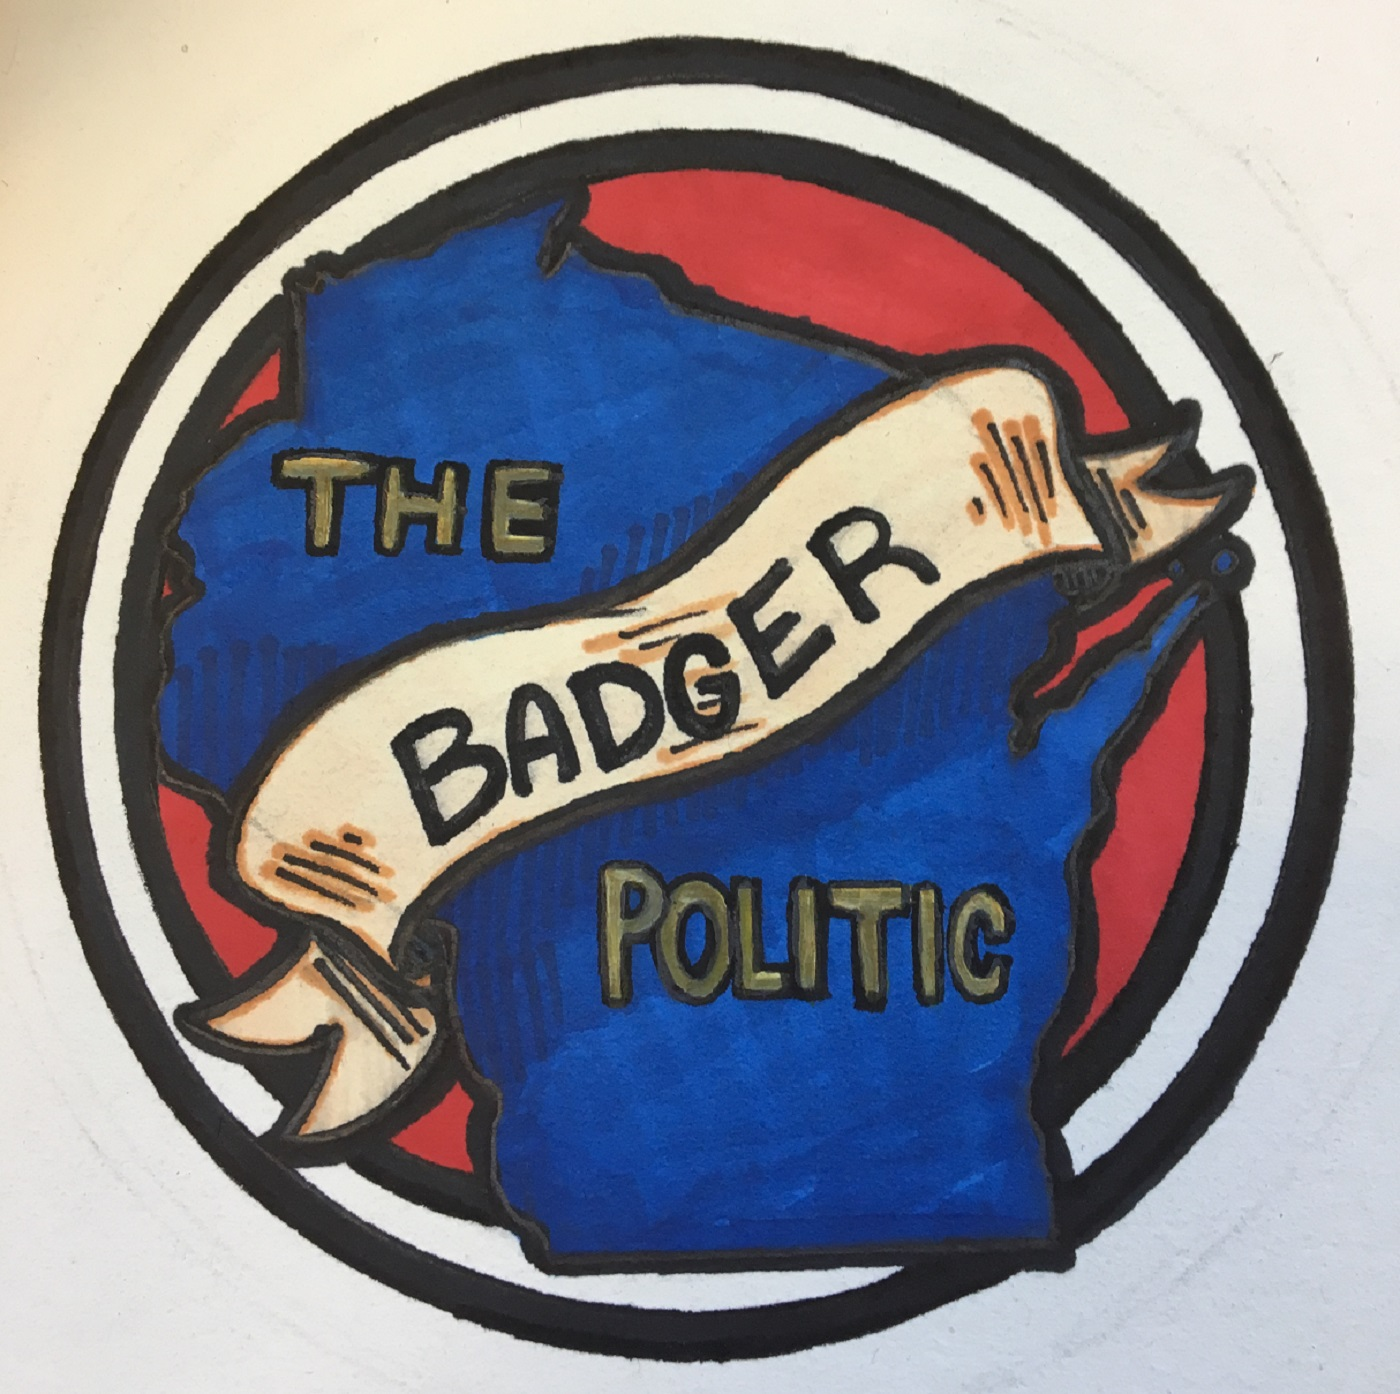 The Badger Politic